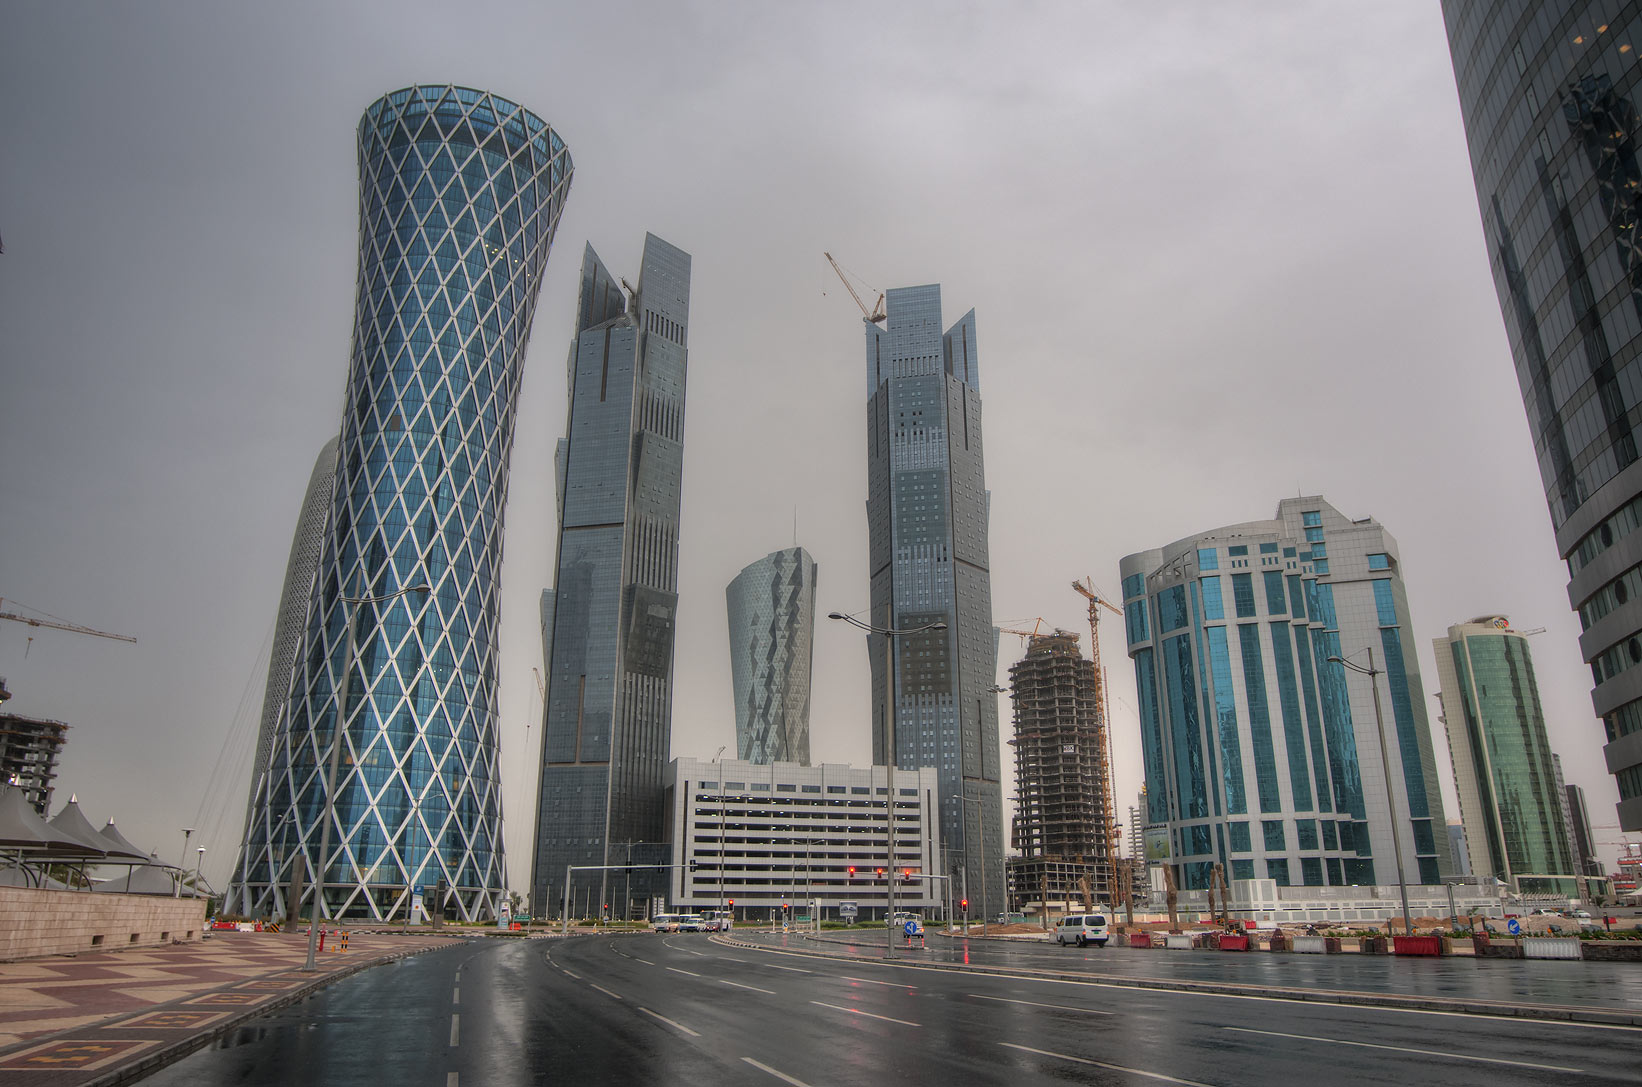 West Bay from Al Wahda St. at rain. Doha, Qatar